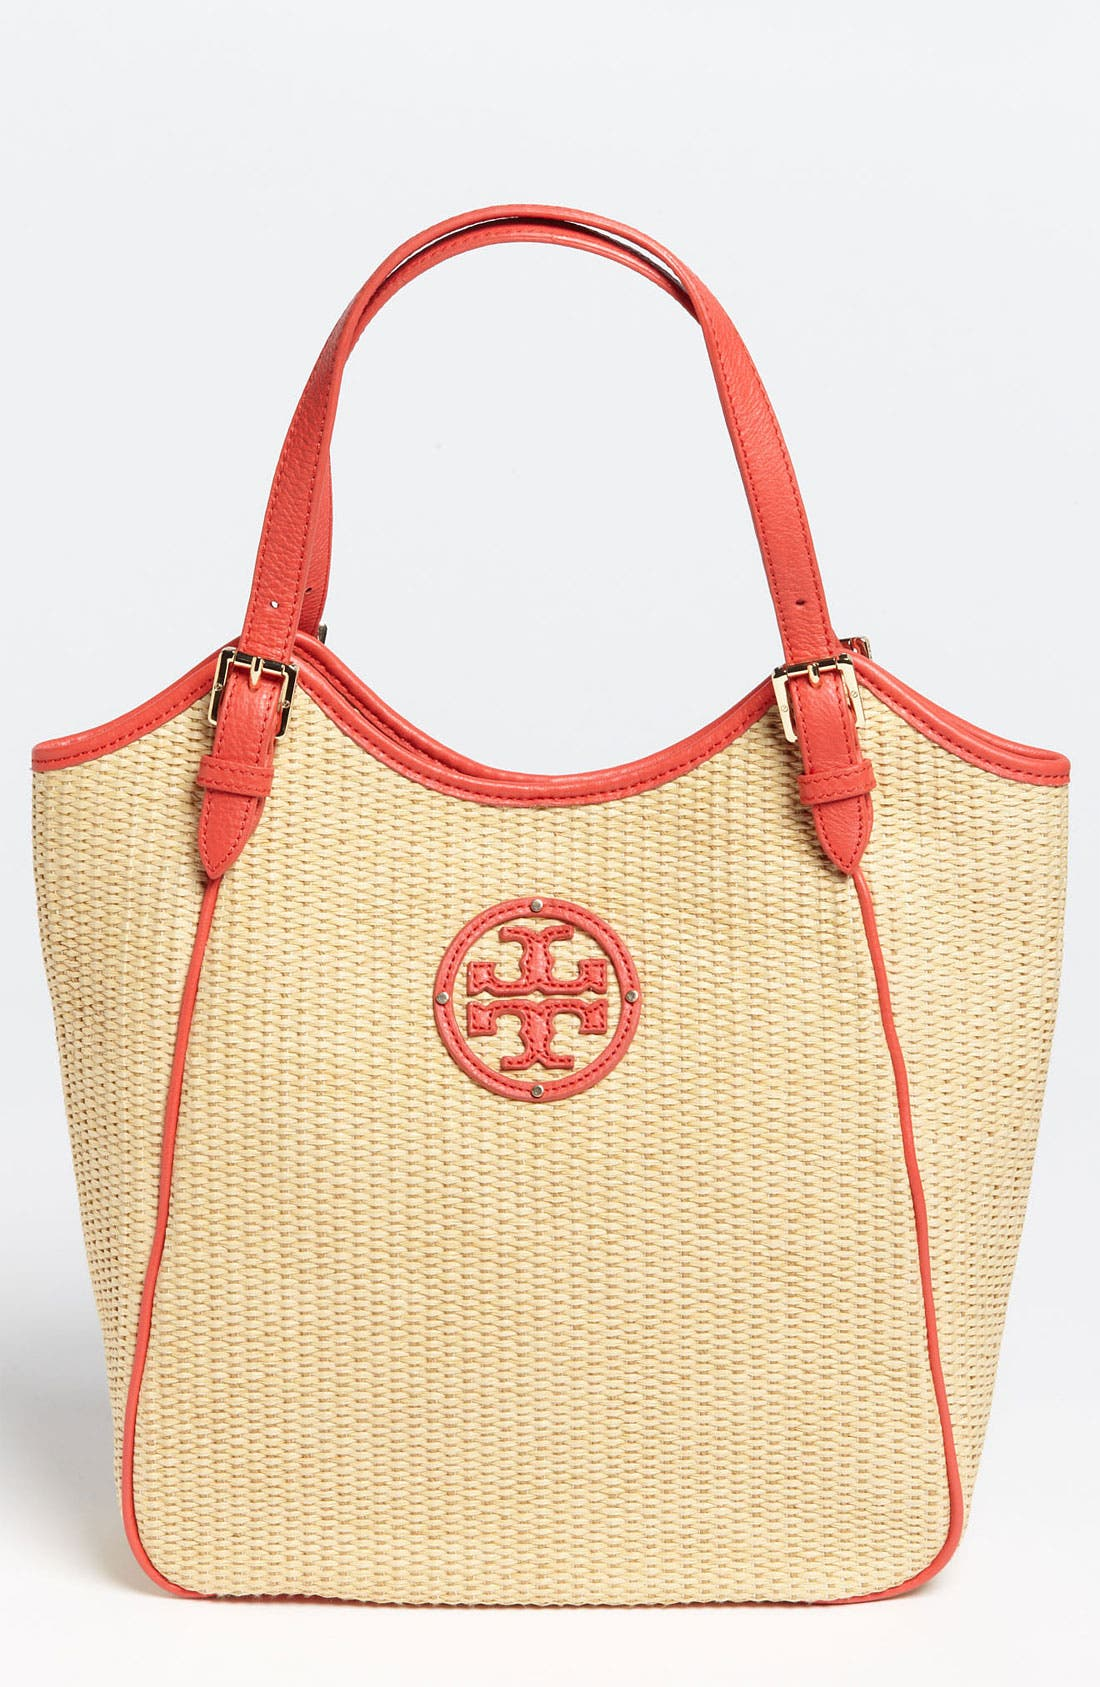 Alternate Image 1 Selected - Tory Burch 'Small' Slouchy Woven Tote